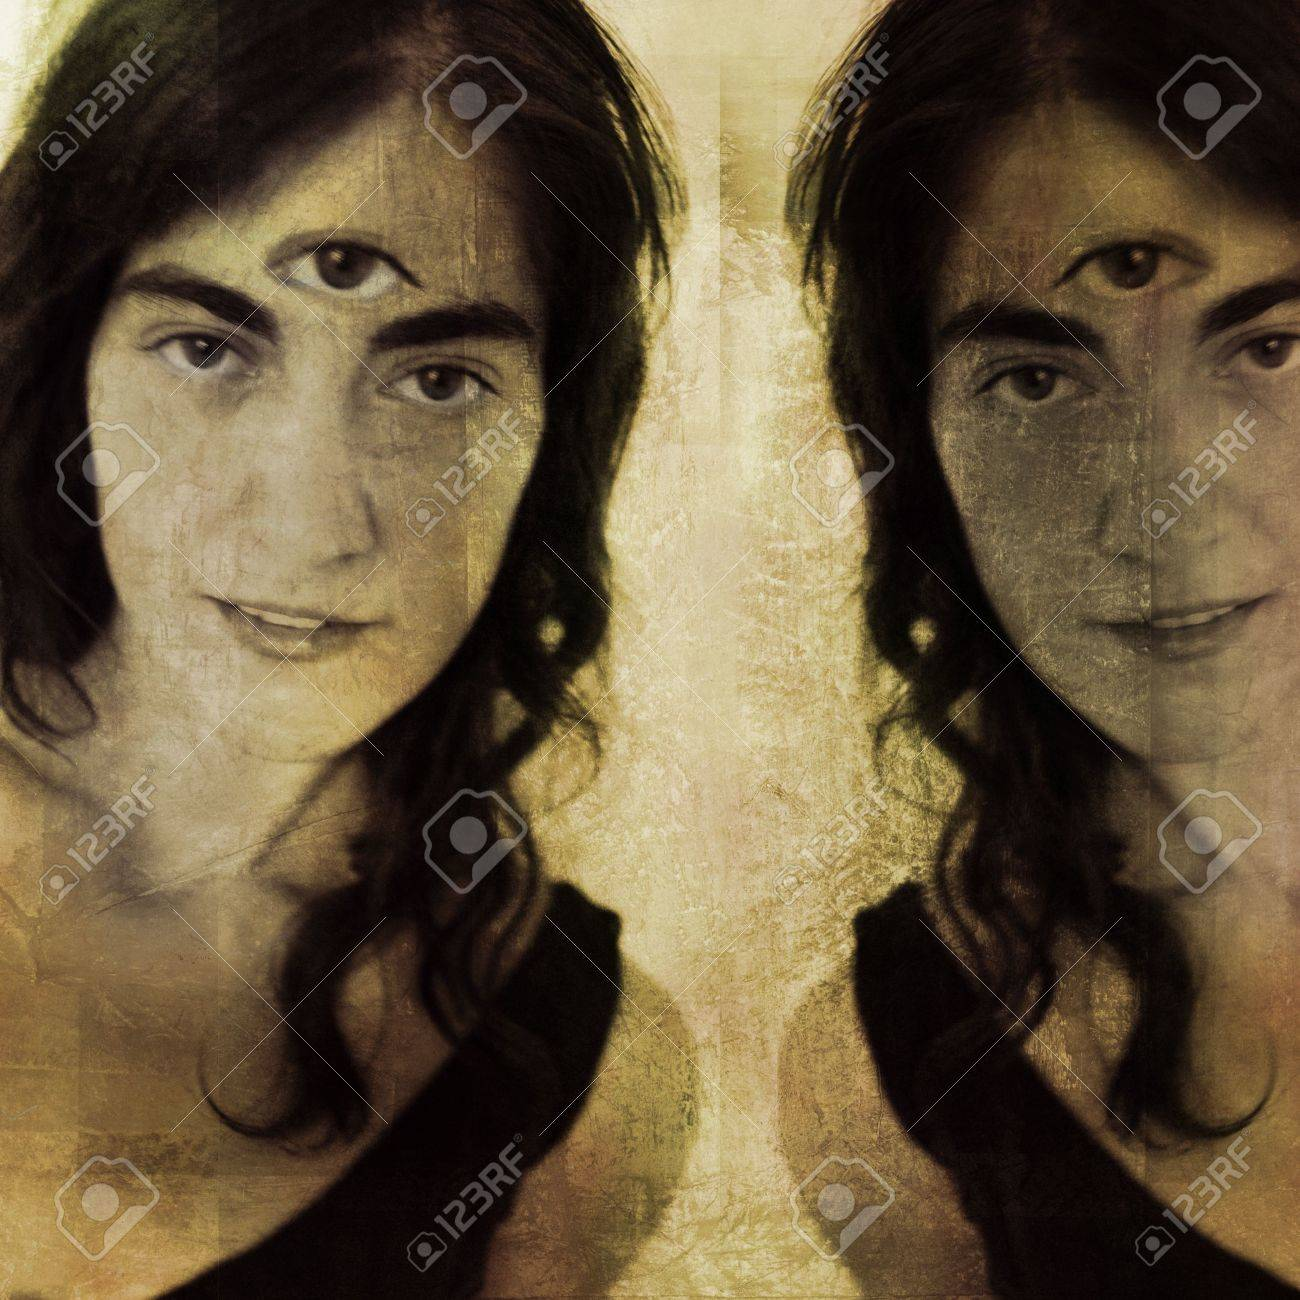 Woman with third eye and her reflection (or double). Photo based illustration. - 5161196